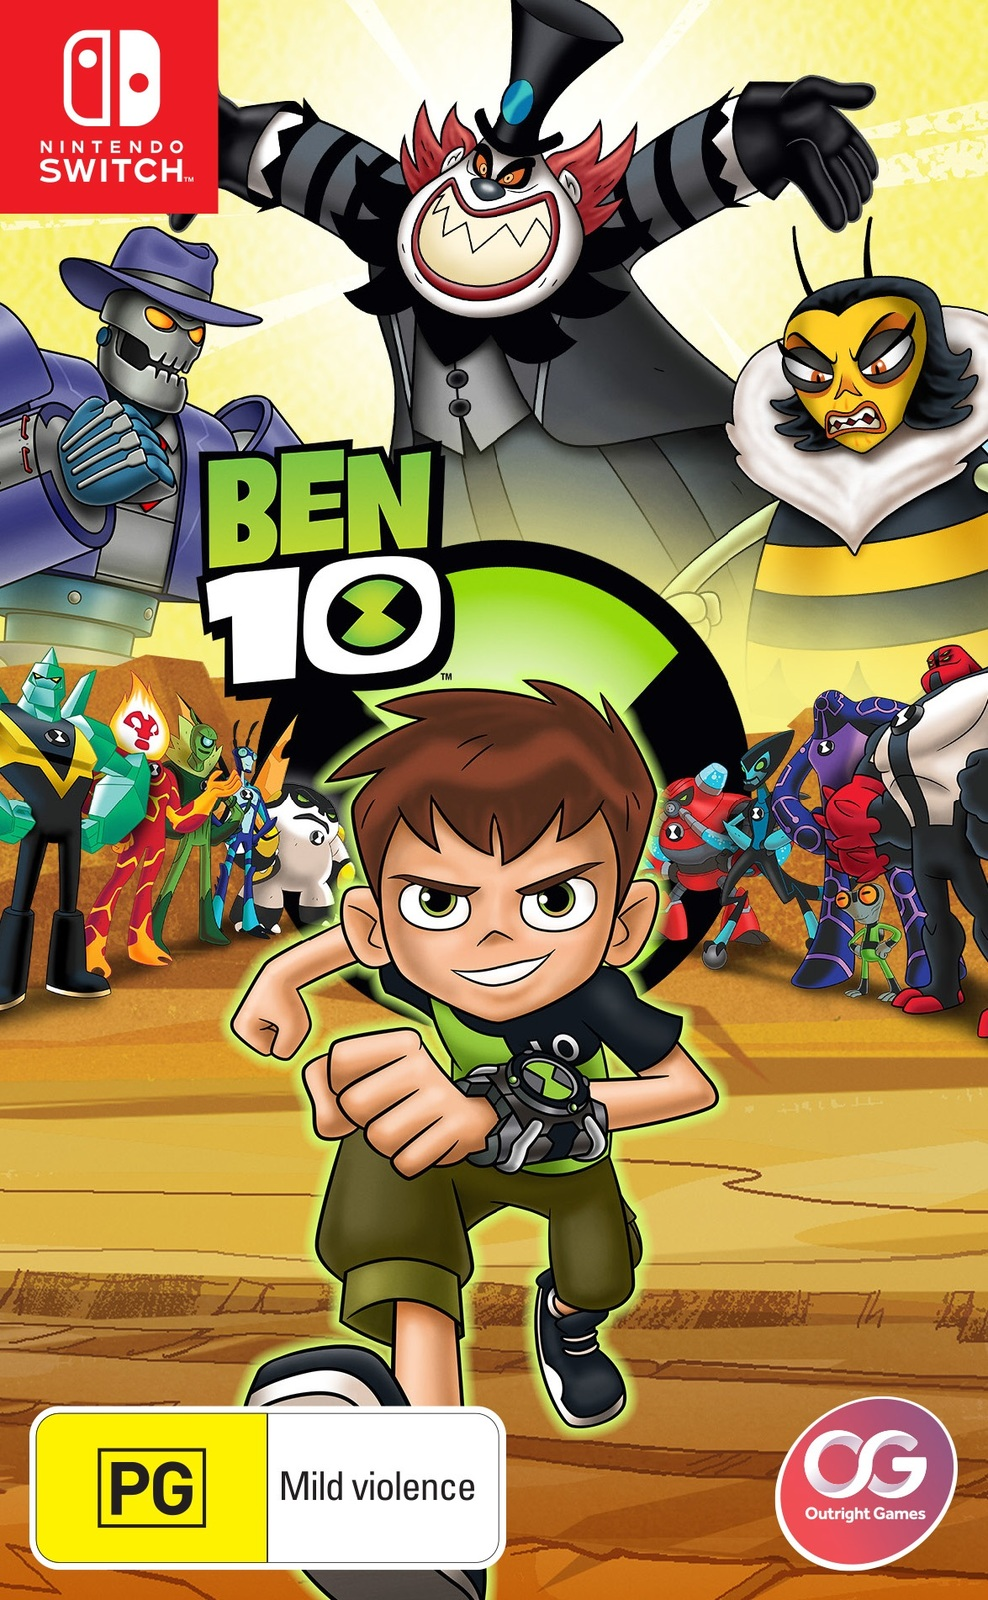 Ben 10 for Nintendo Switch image